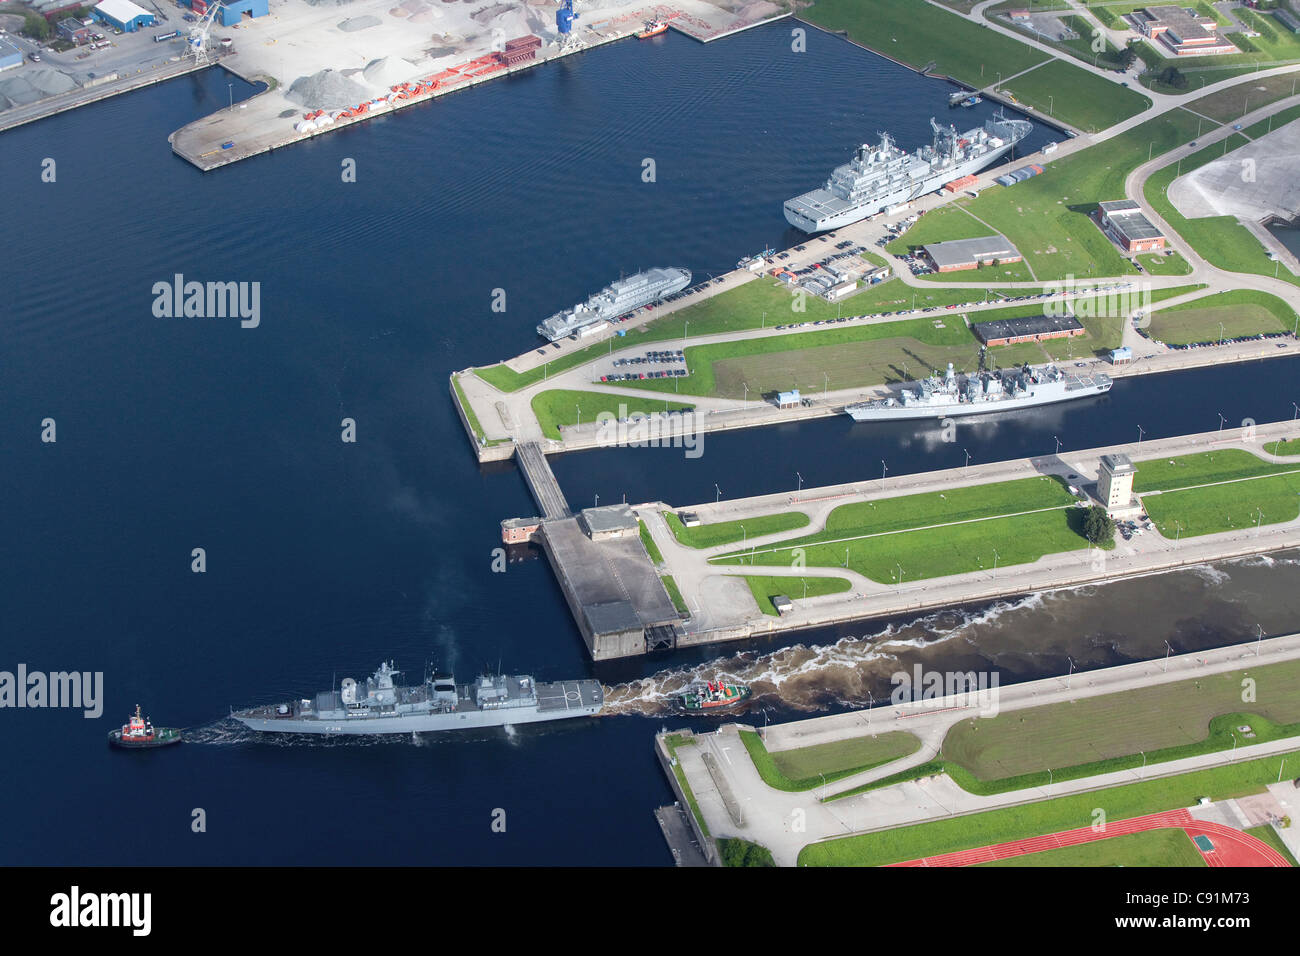 Aerial of tug boat towing battleship out of loch, naval harbour at Wilhelmshaven, Lower Saxony, Germany - Stock Image